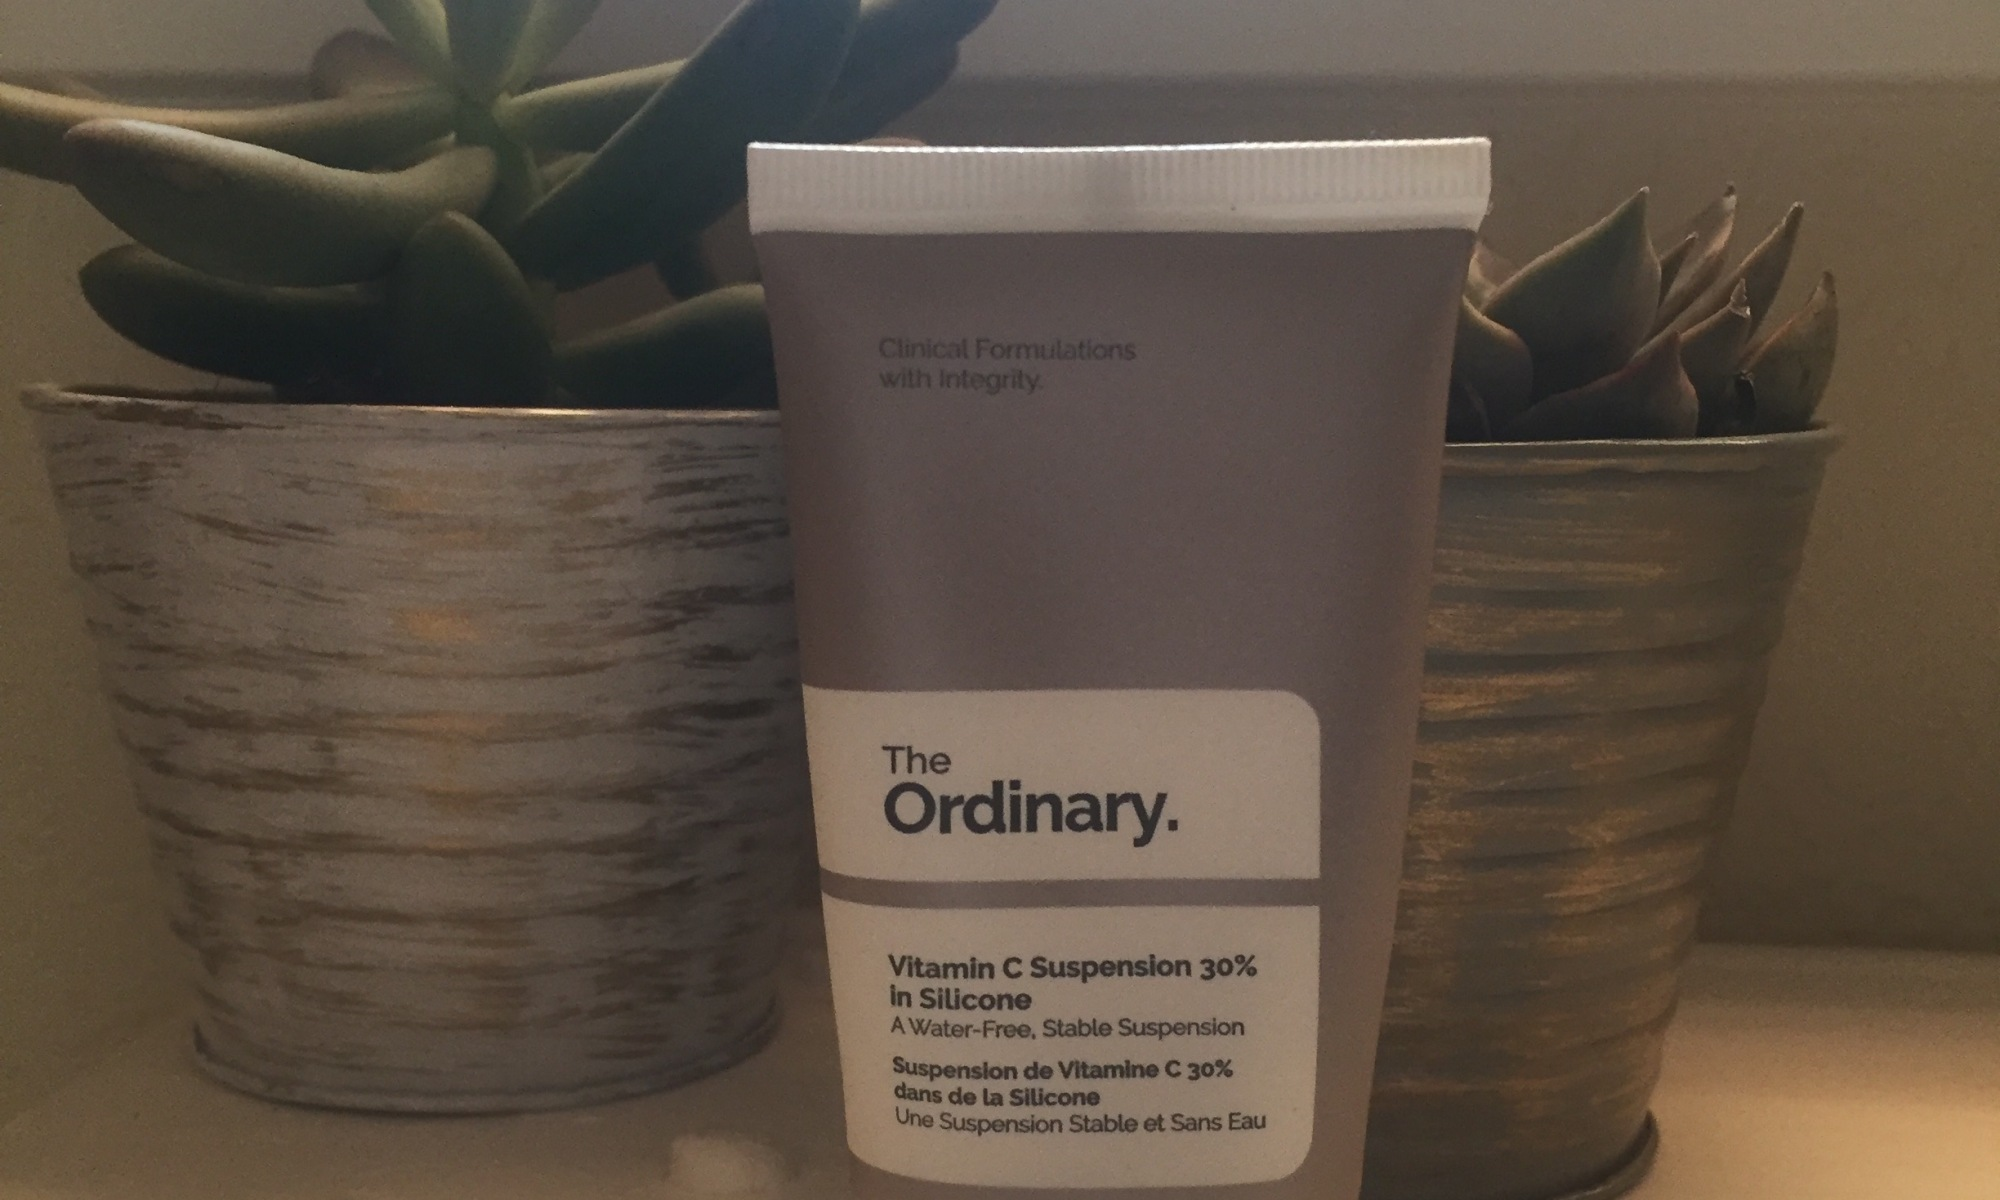 The Ordinary Vitamin C 30% in Silicone skincare review | erniebufflo.com